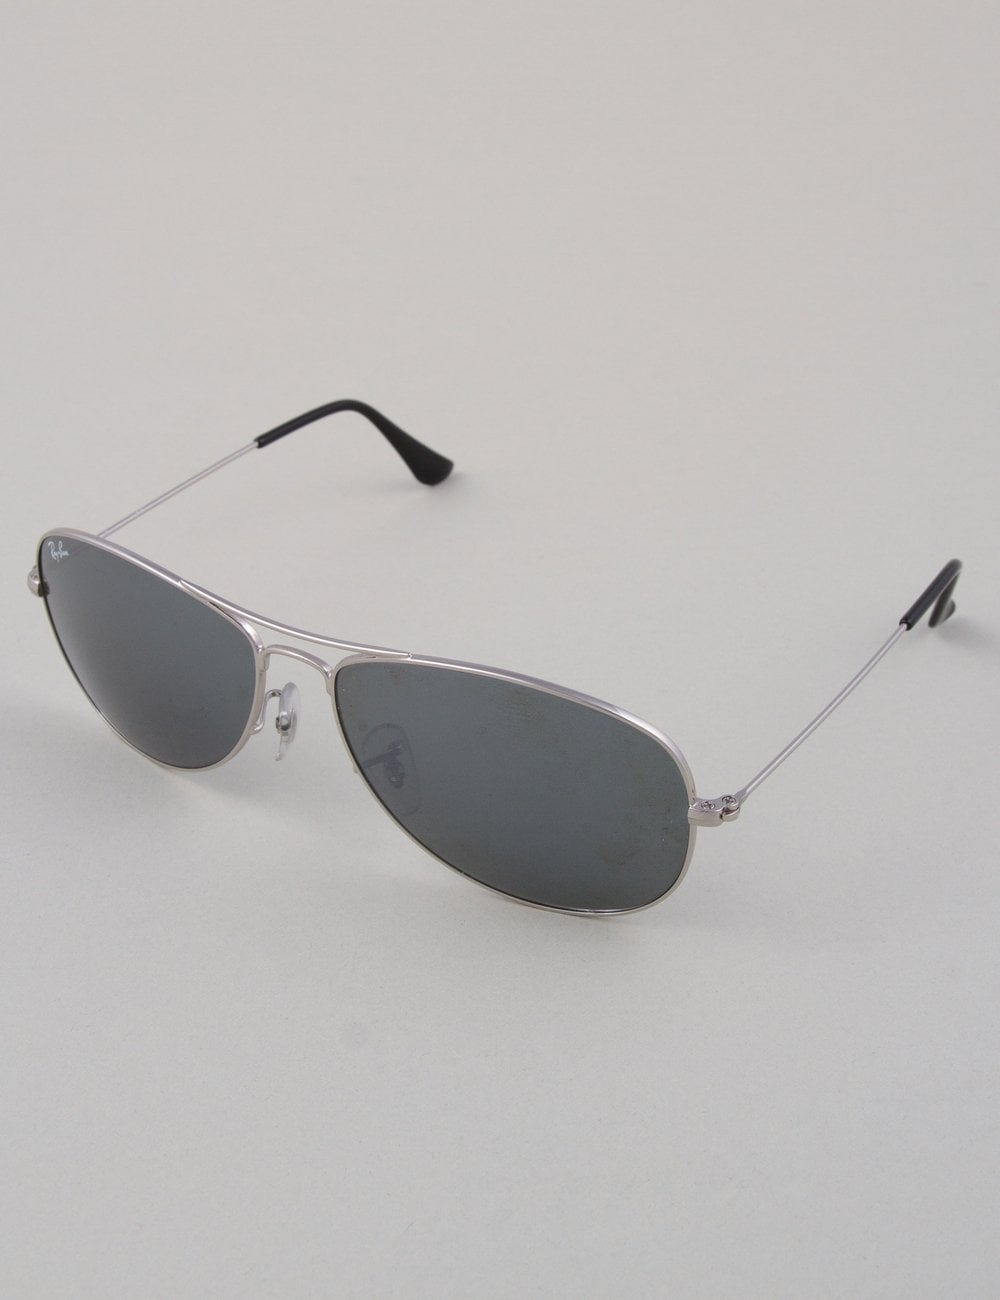 6c300e3ee2 Ray-Ban Cockpit RB3362 Sunglasses - Silver    Crystal Grey Mirror ...